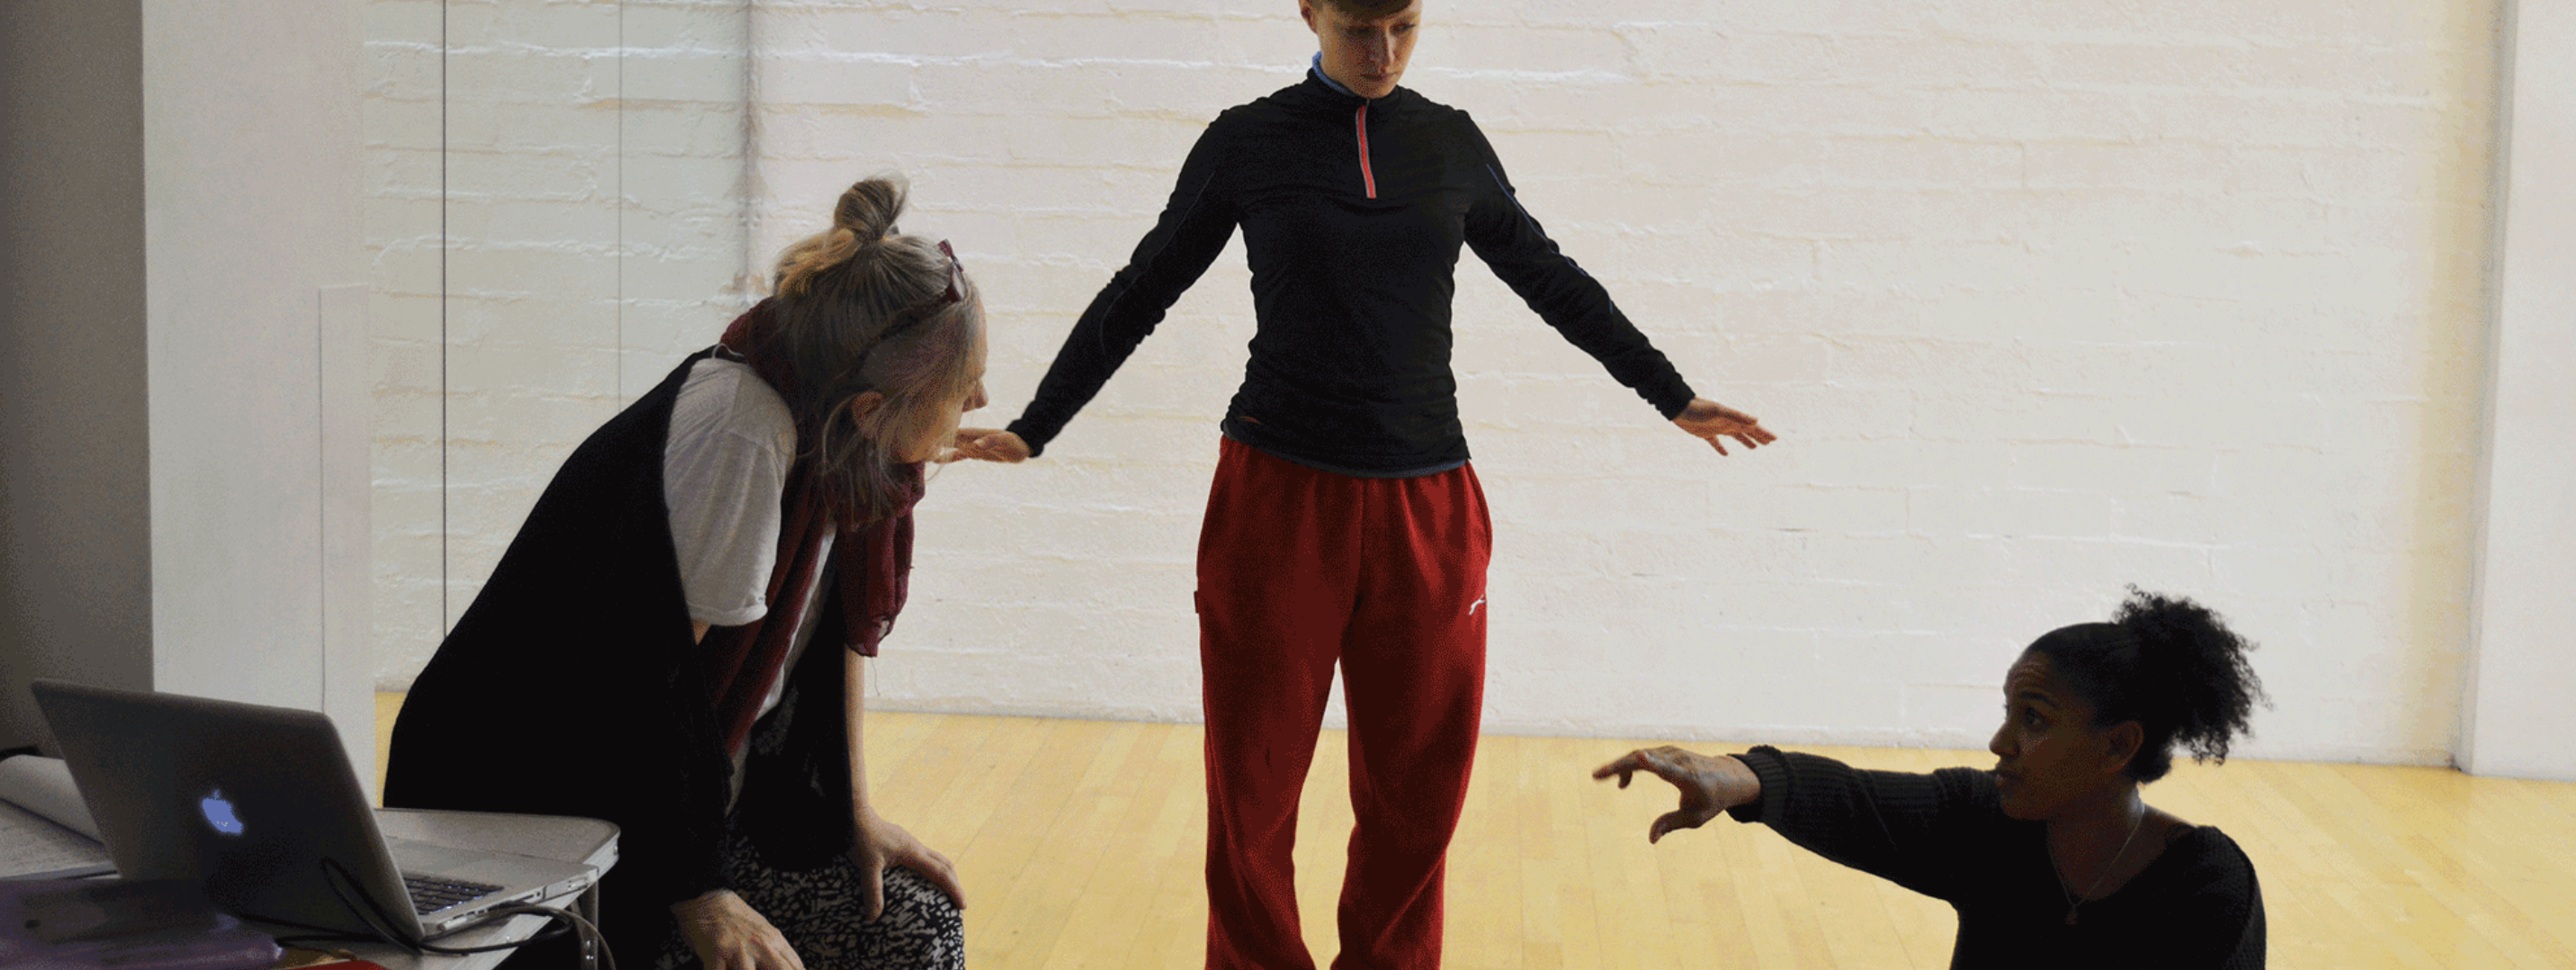 Three dancers in a rehearsal room